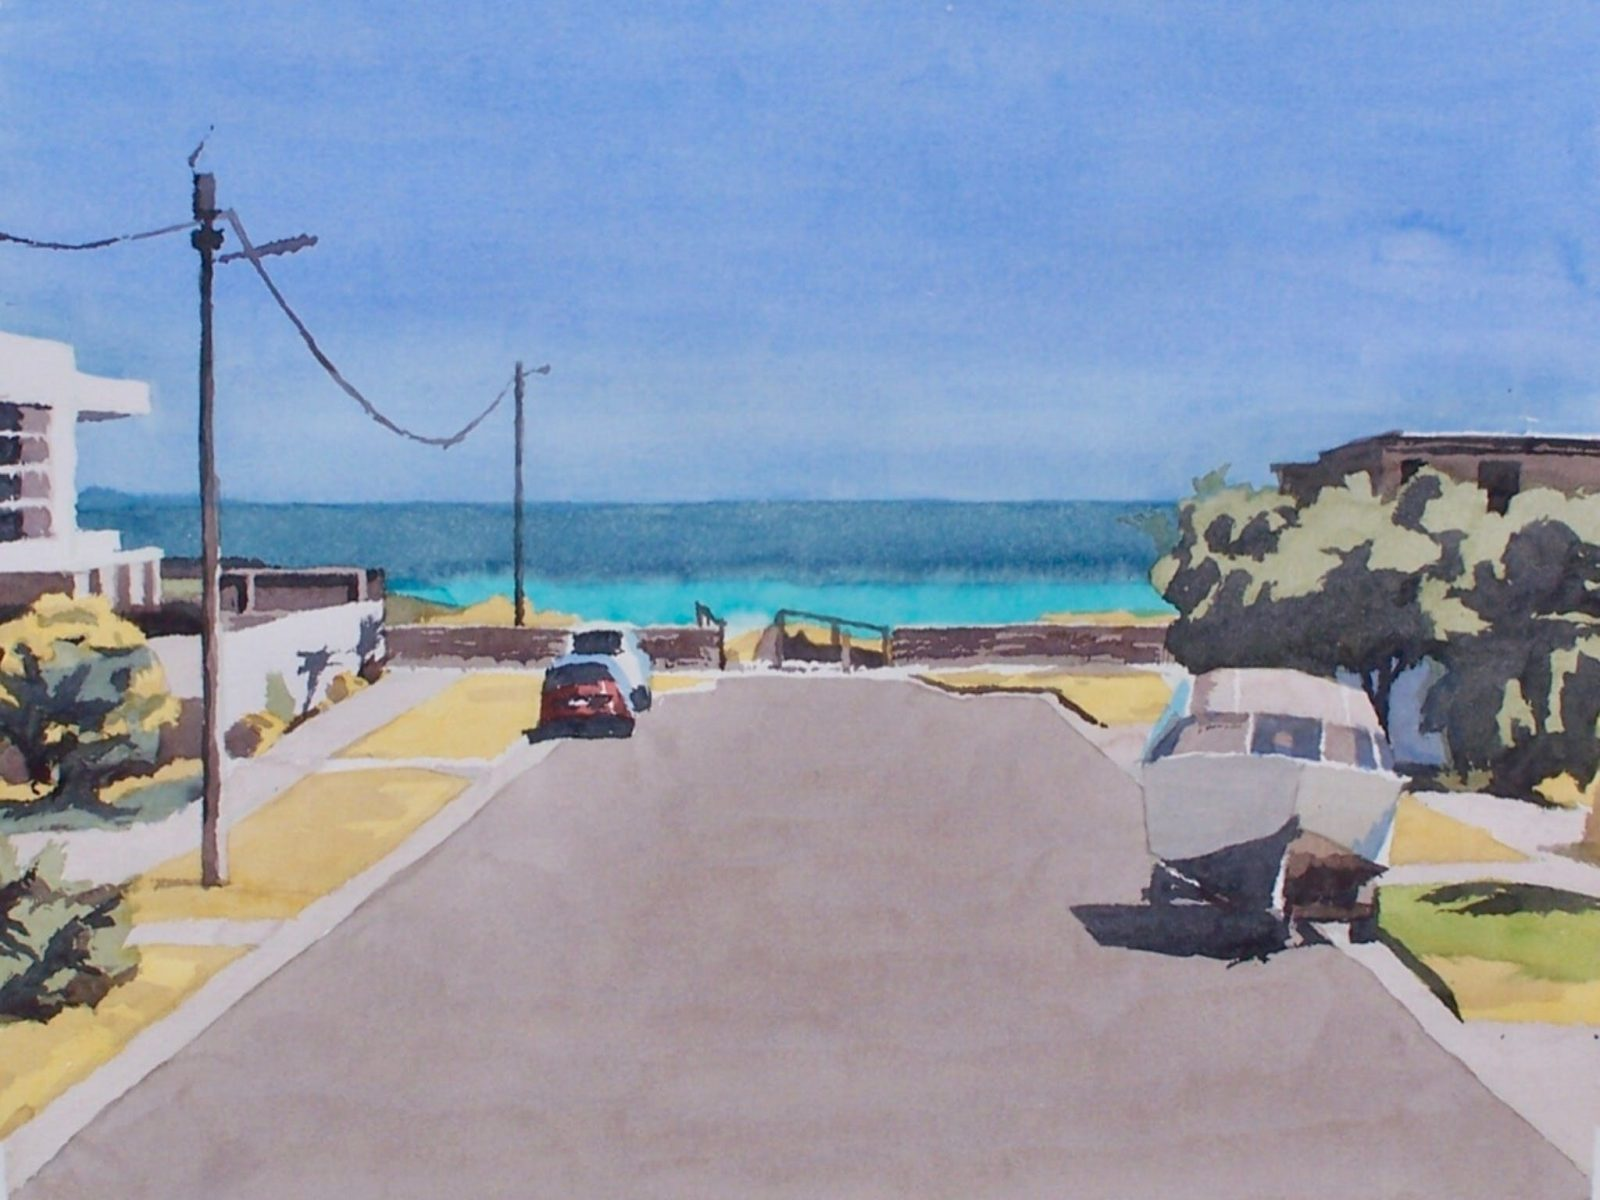 Painting of suburban street with ocean view. Car and boat parked on street.